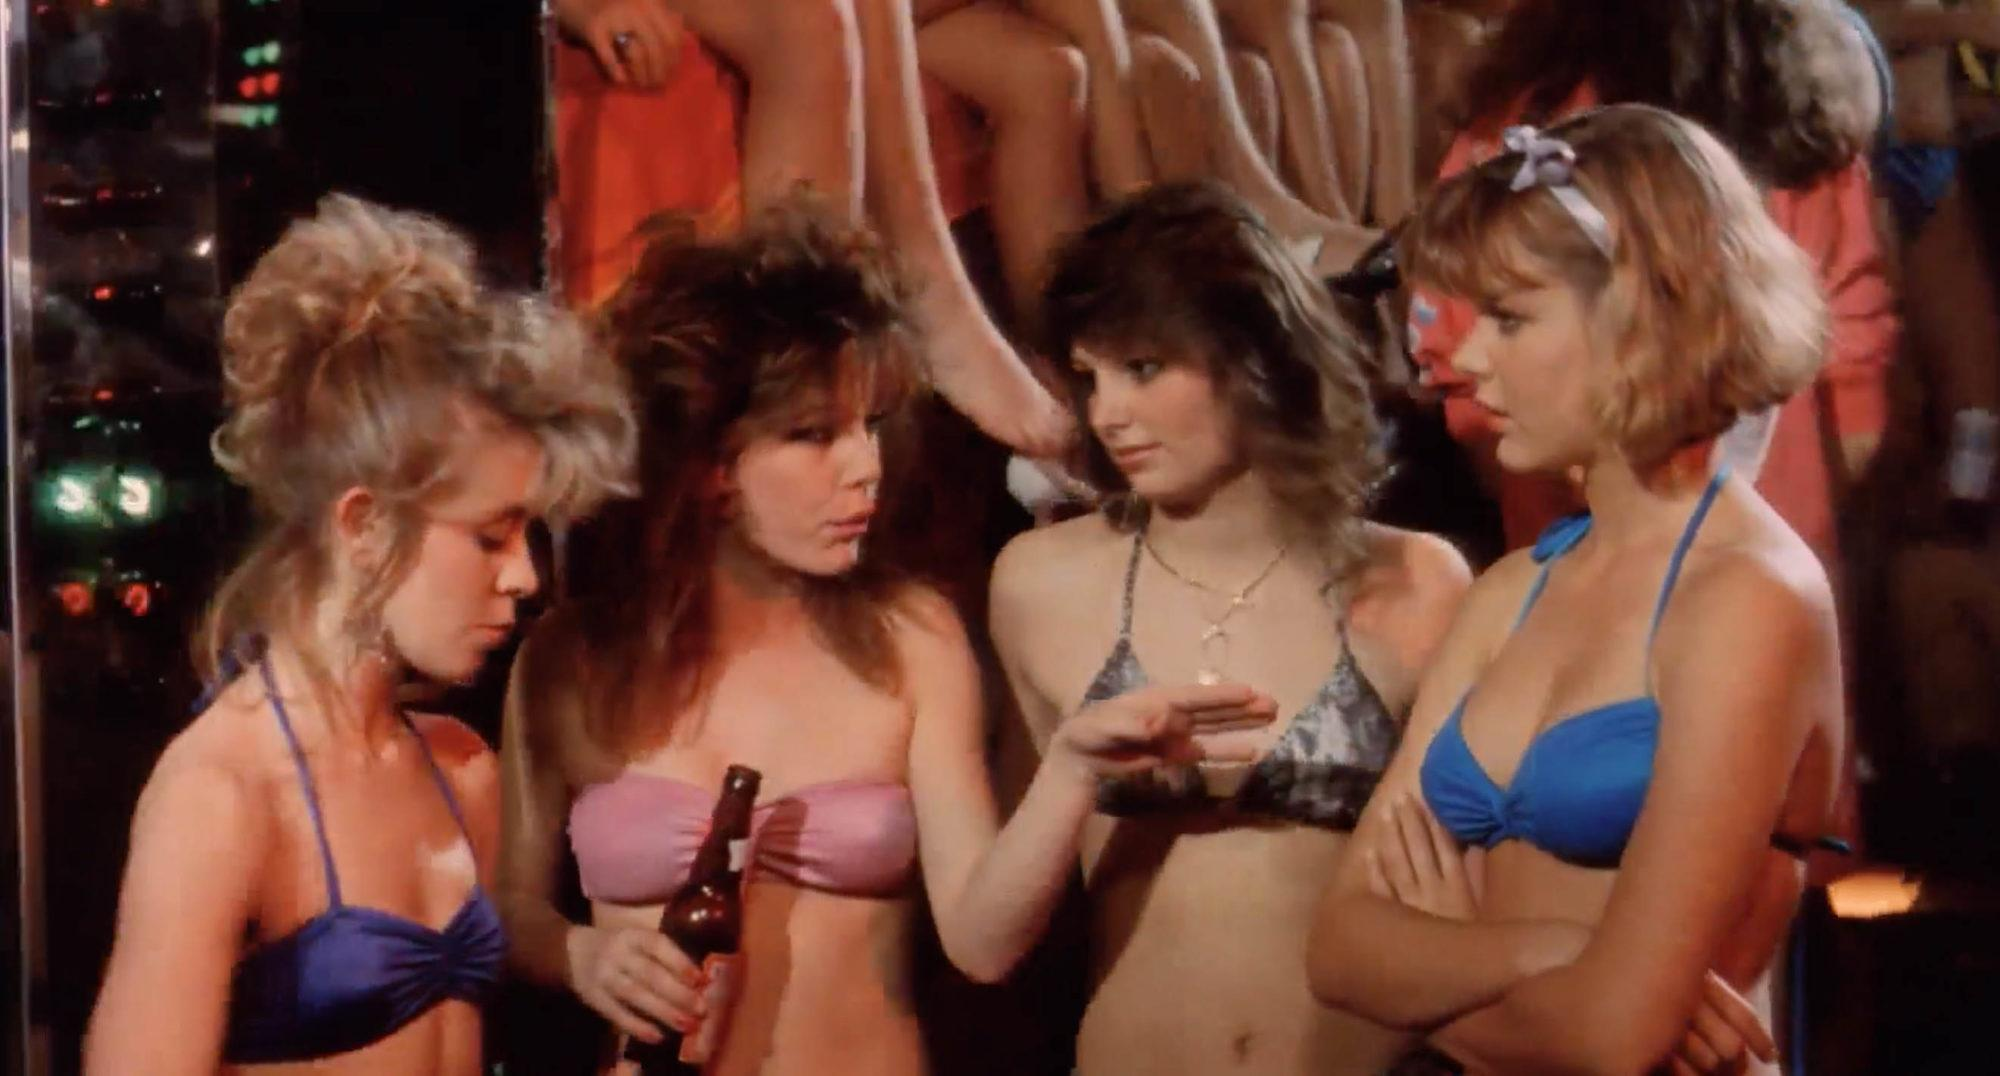 Janelle Brady in Class Of Nuke 'Em High (1986)